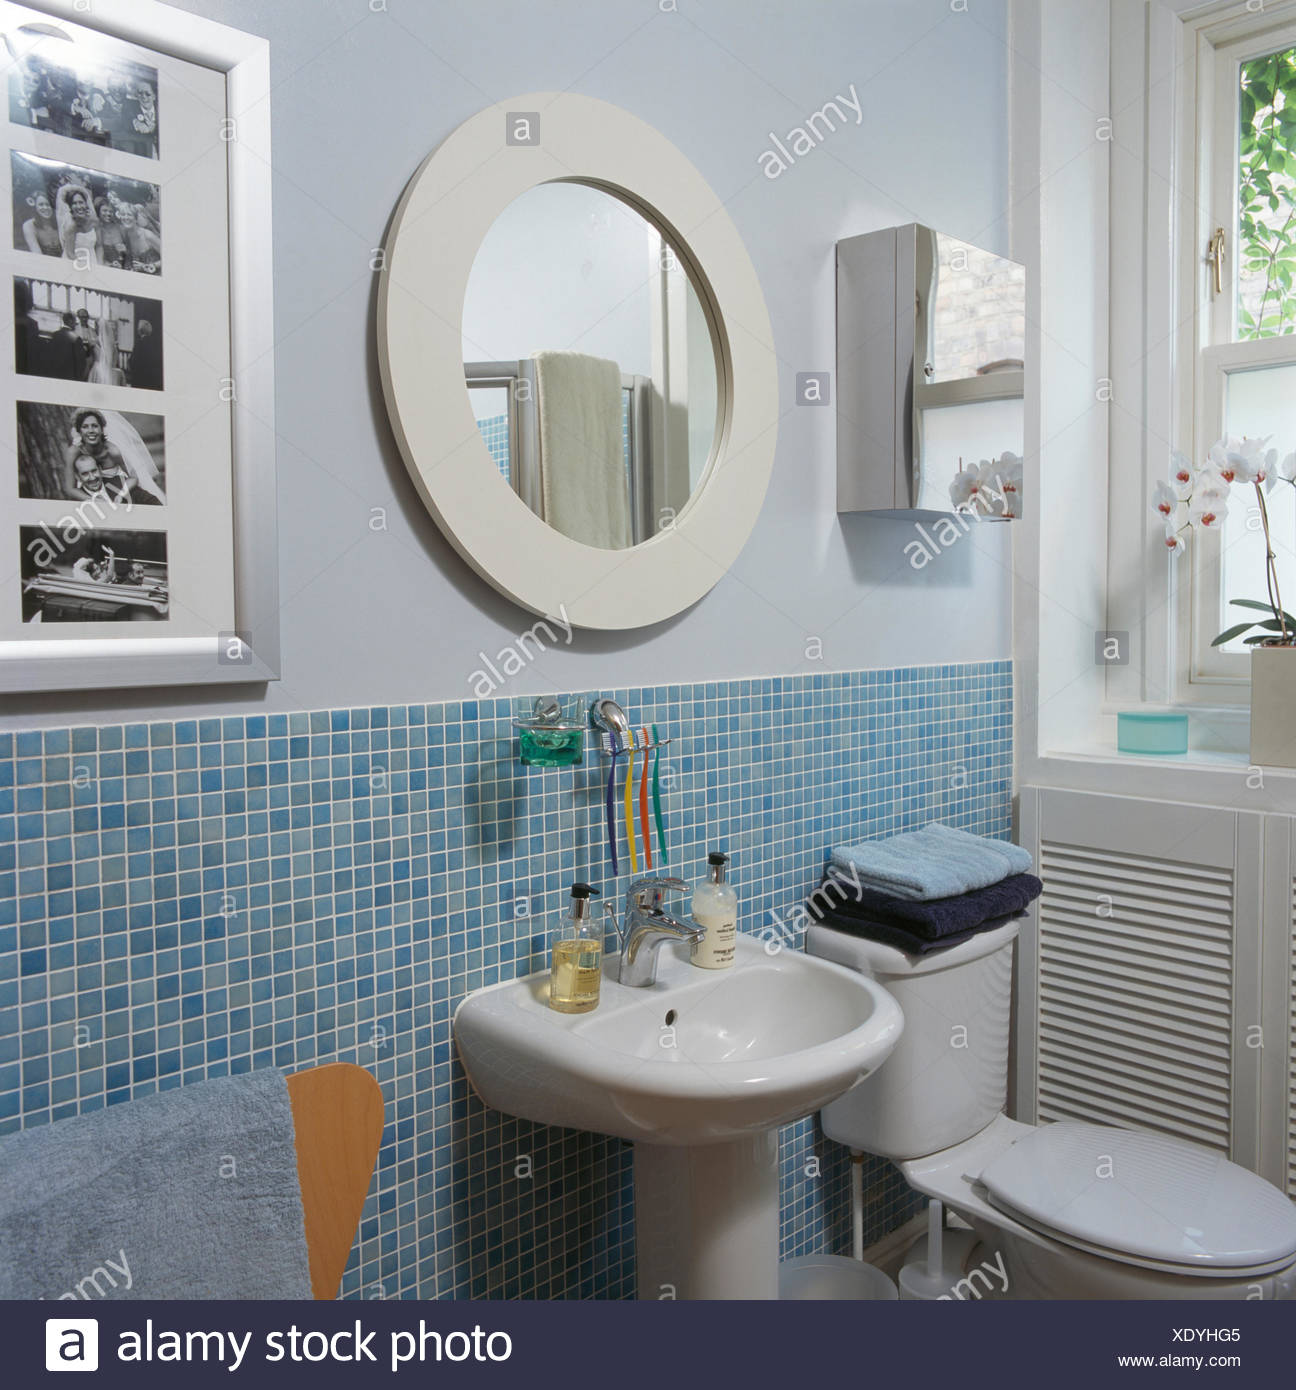 https www alamy com circular white mirror above basin in modern bathroom with light blue mosaic tiling image283962901 html